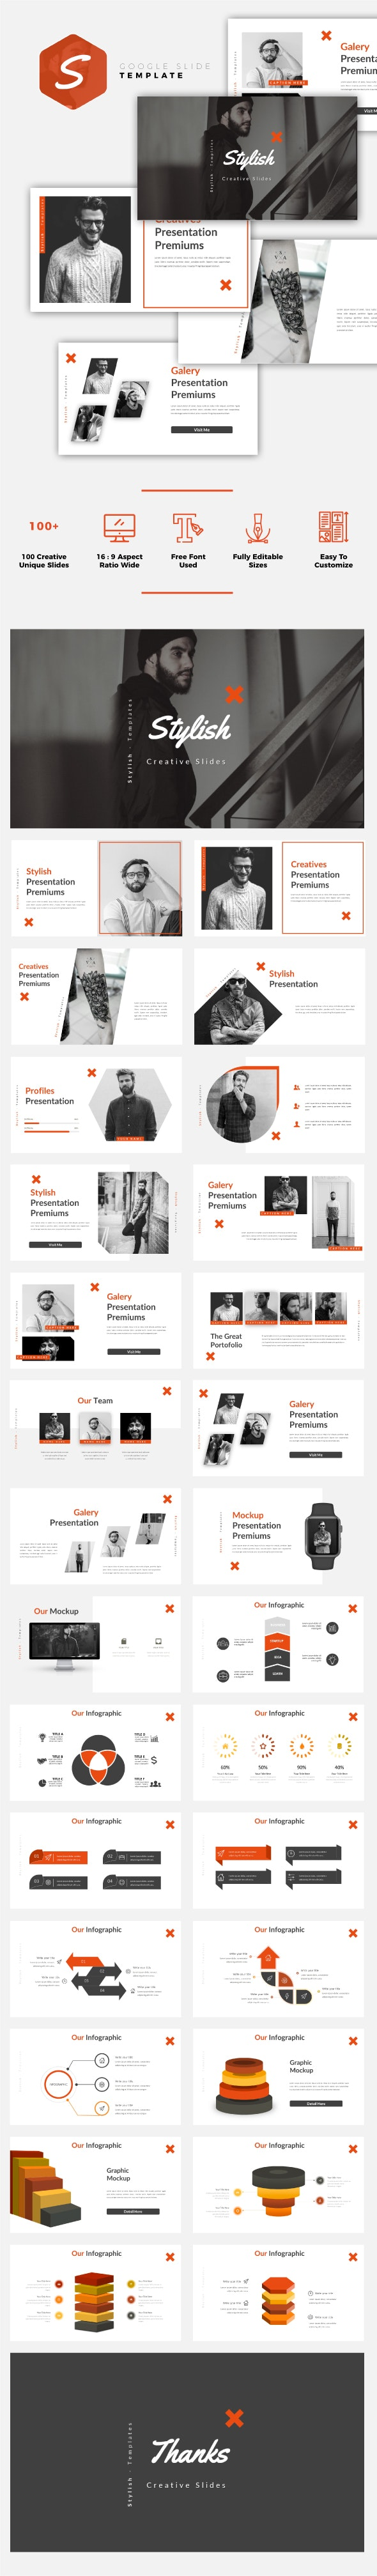 Stylish - Creative Google Slides - Google Slides Presentation Templates